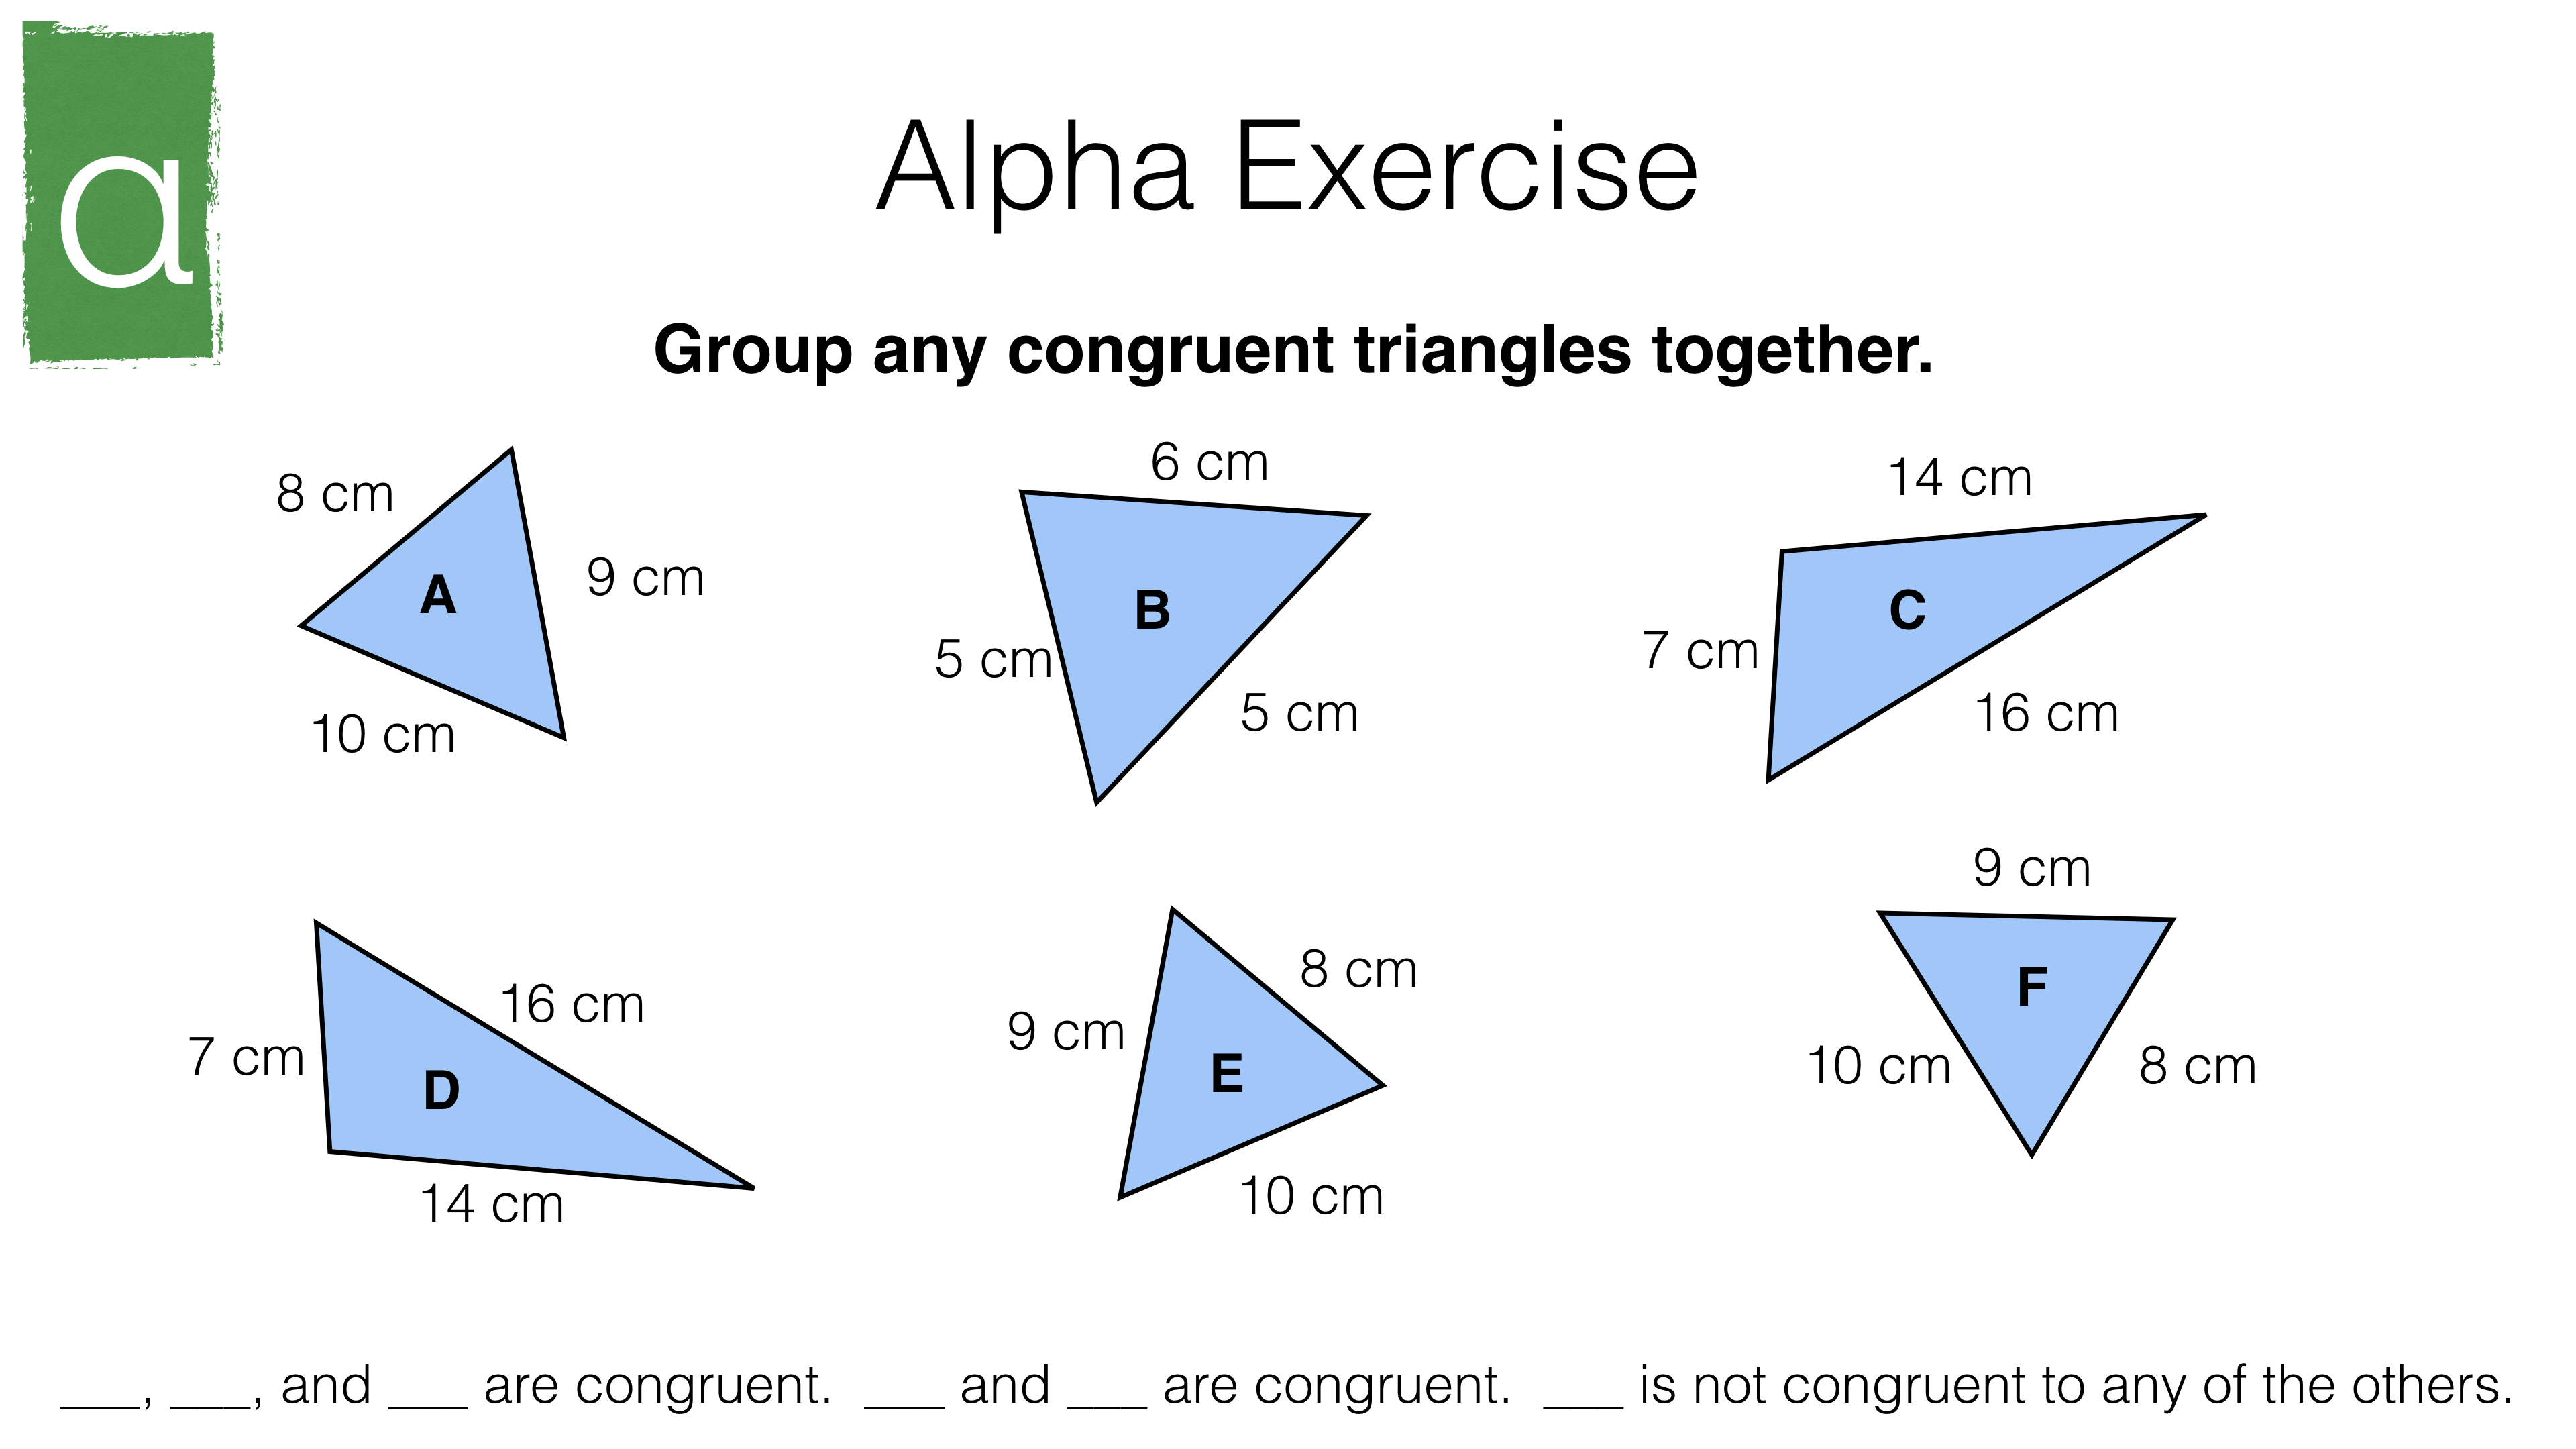 G5a Congruence Criteria For Triangles Sss Sas Asa